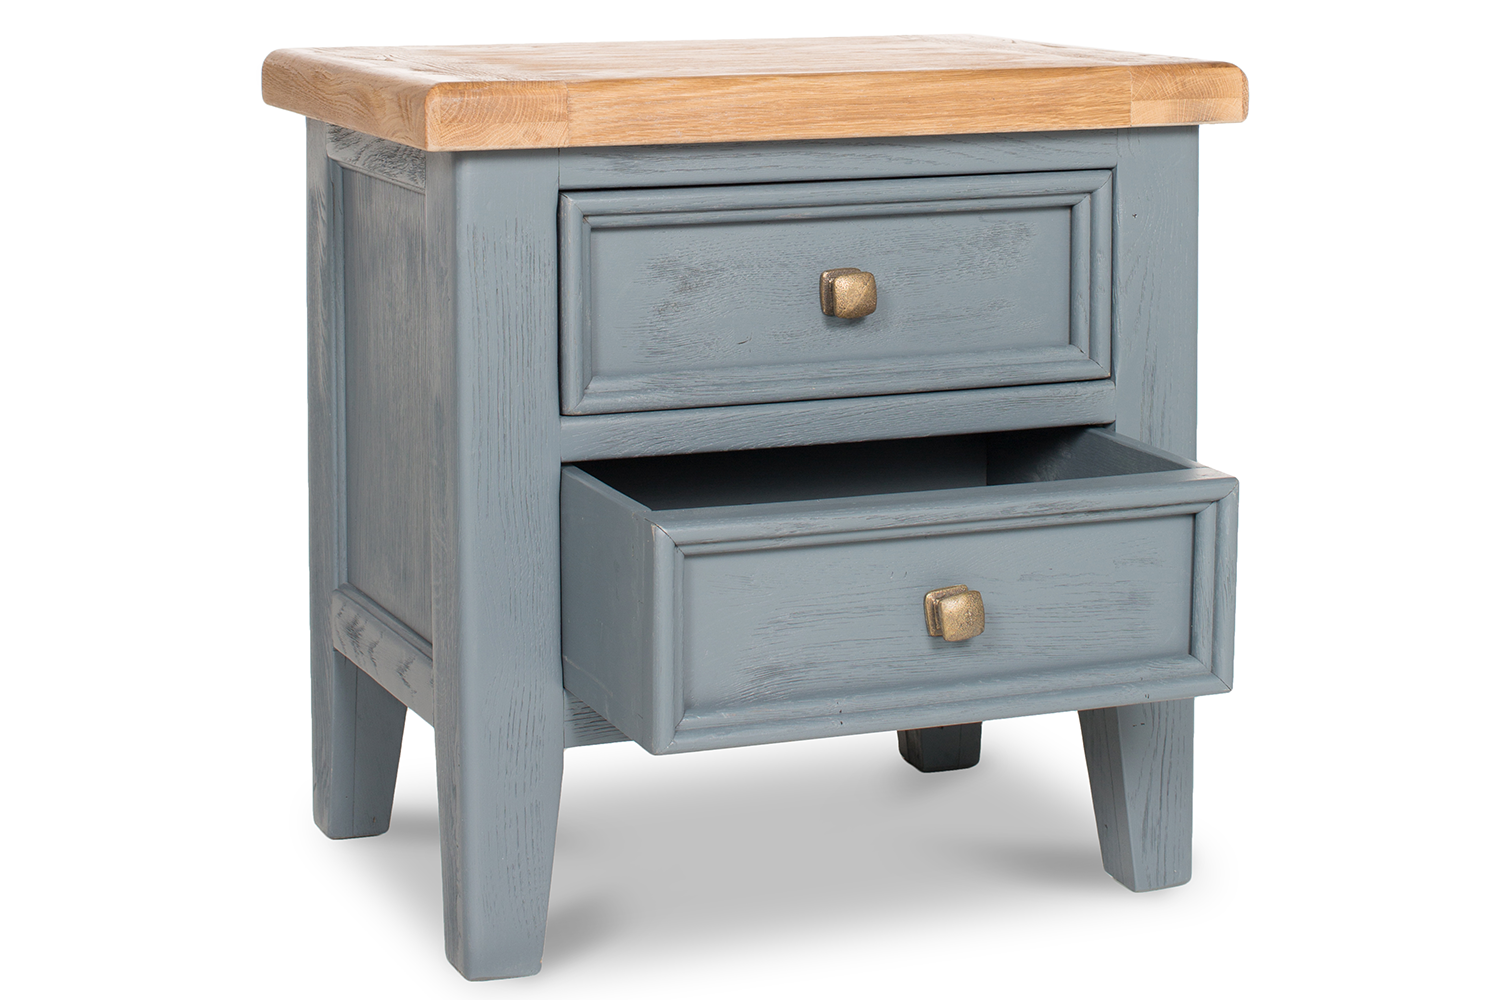 Tisbury Lamp Table with Drawers